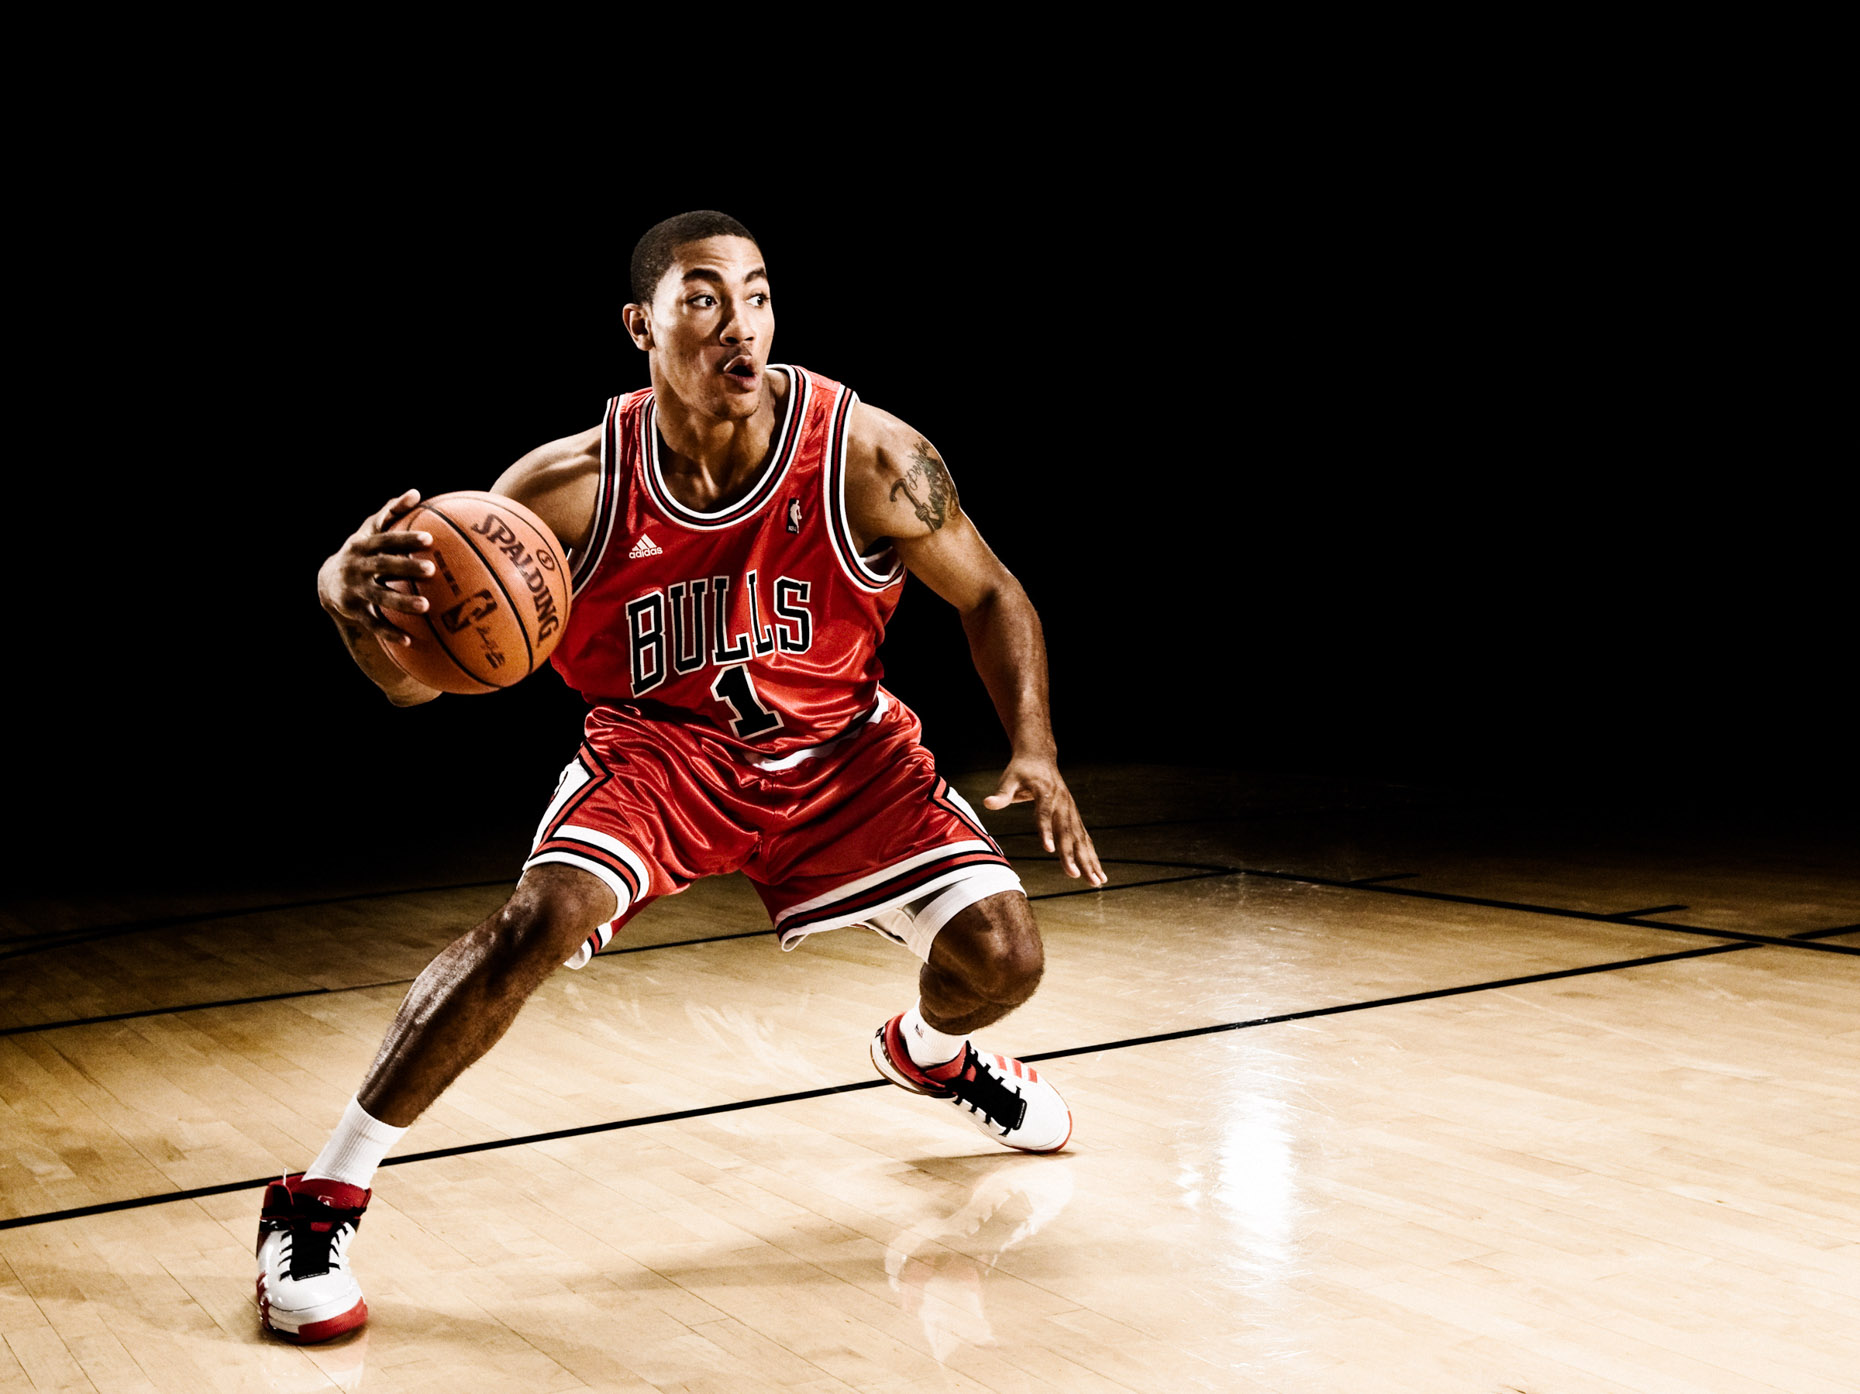 Adidas 2008 rookie shoot with Derrick Rose